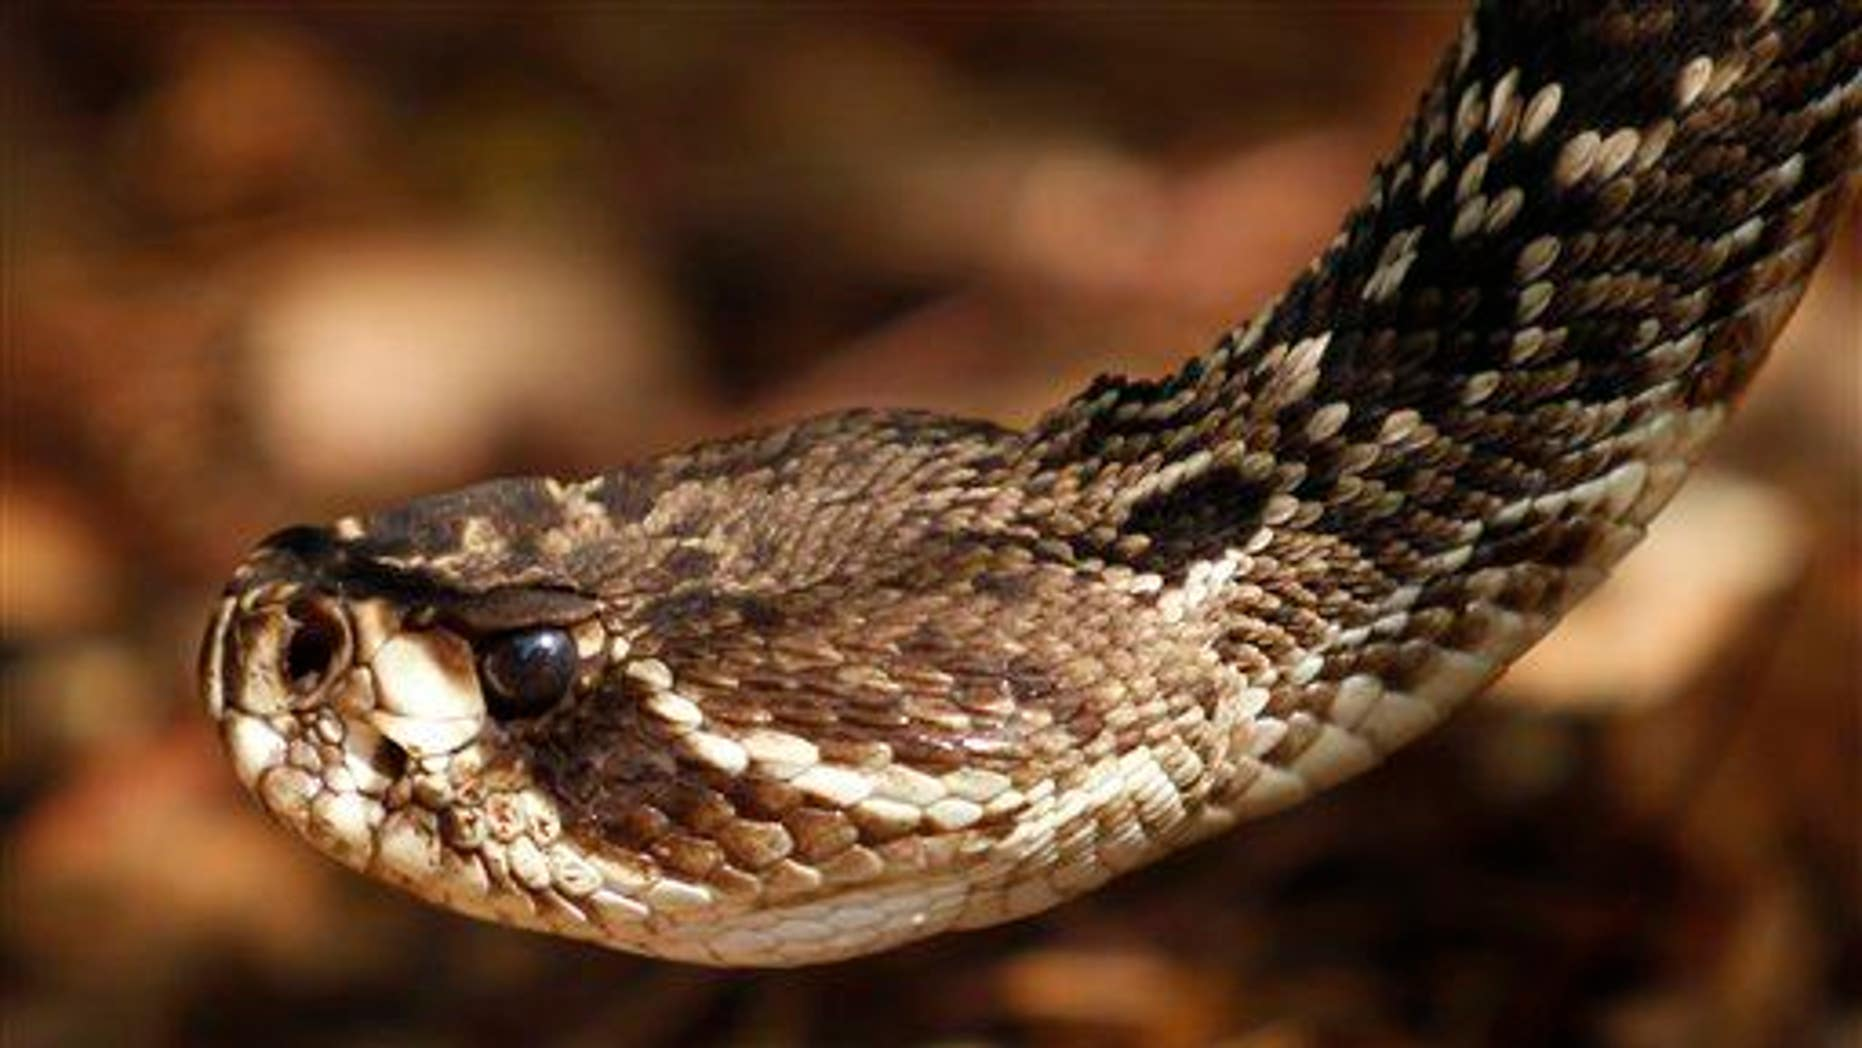 An eastern diamondback rattlesnake at the Phillip and Patricia Frost Museum of Science.